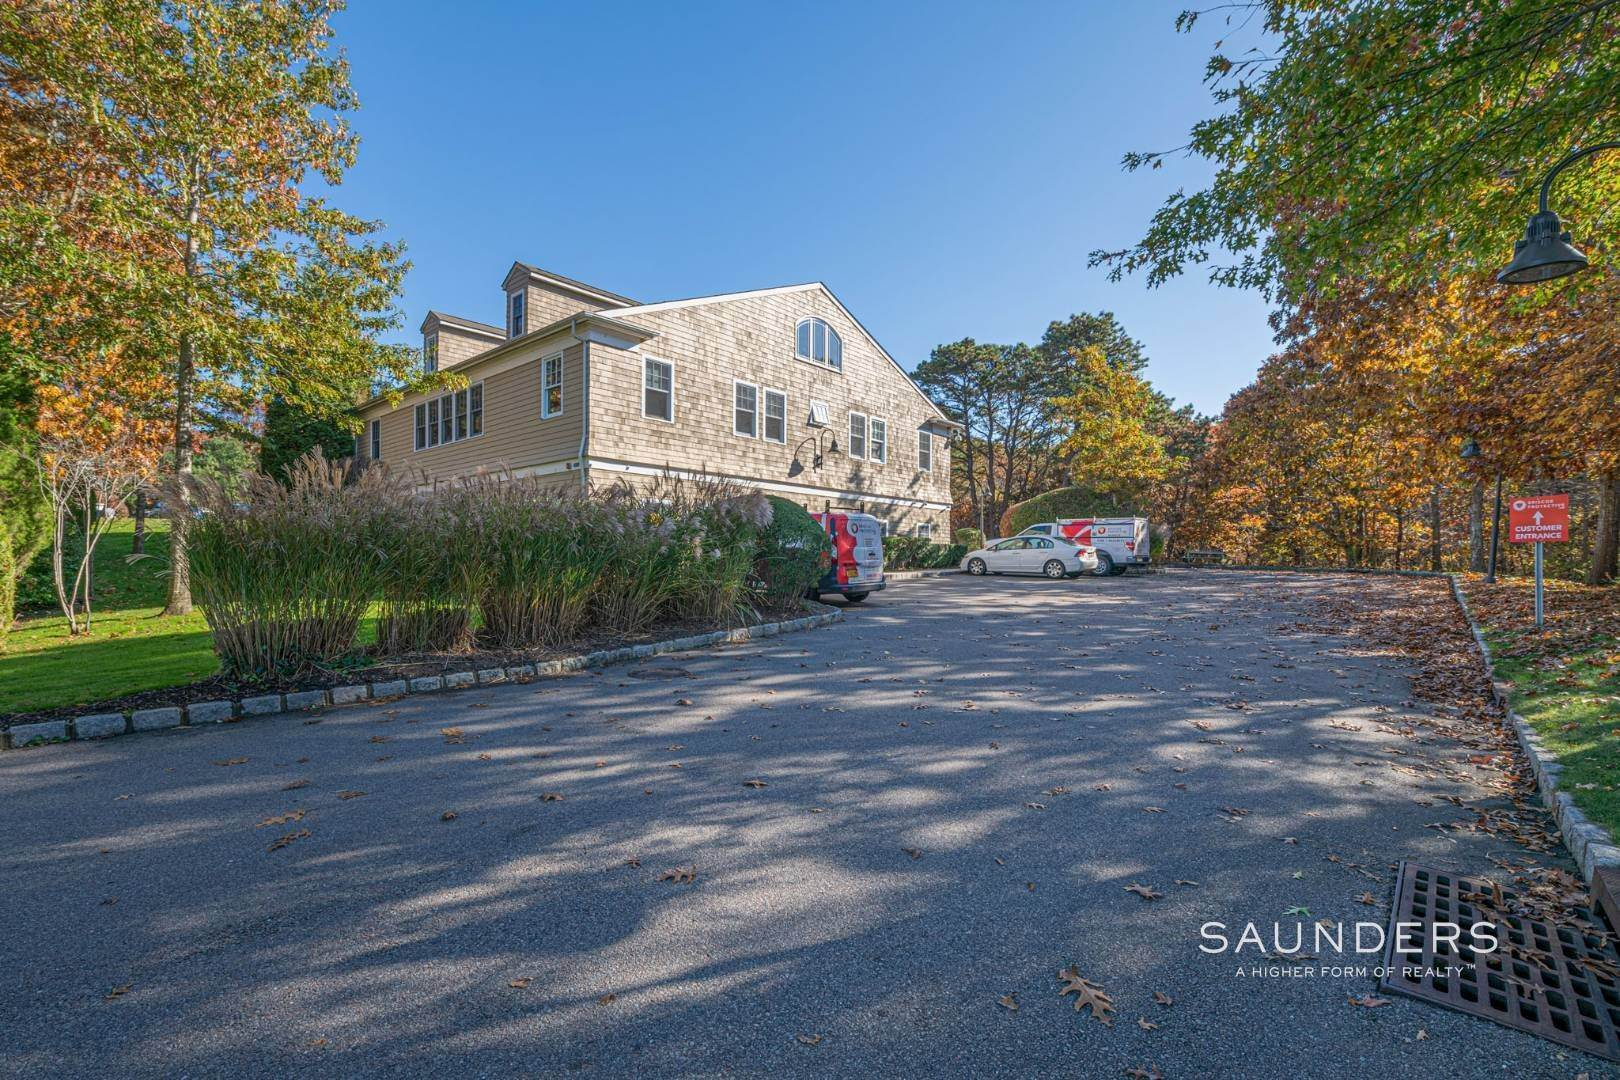 2. Commercial for Sale at Southampton Office Property For Investor Or User 2036 County Road 39, Southampton, Southampton Town, NY 11968